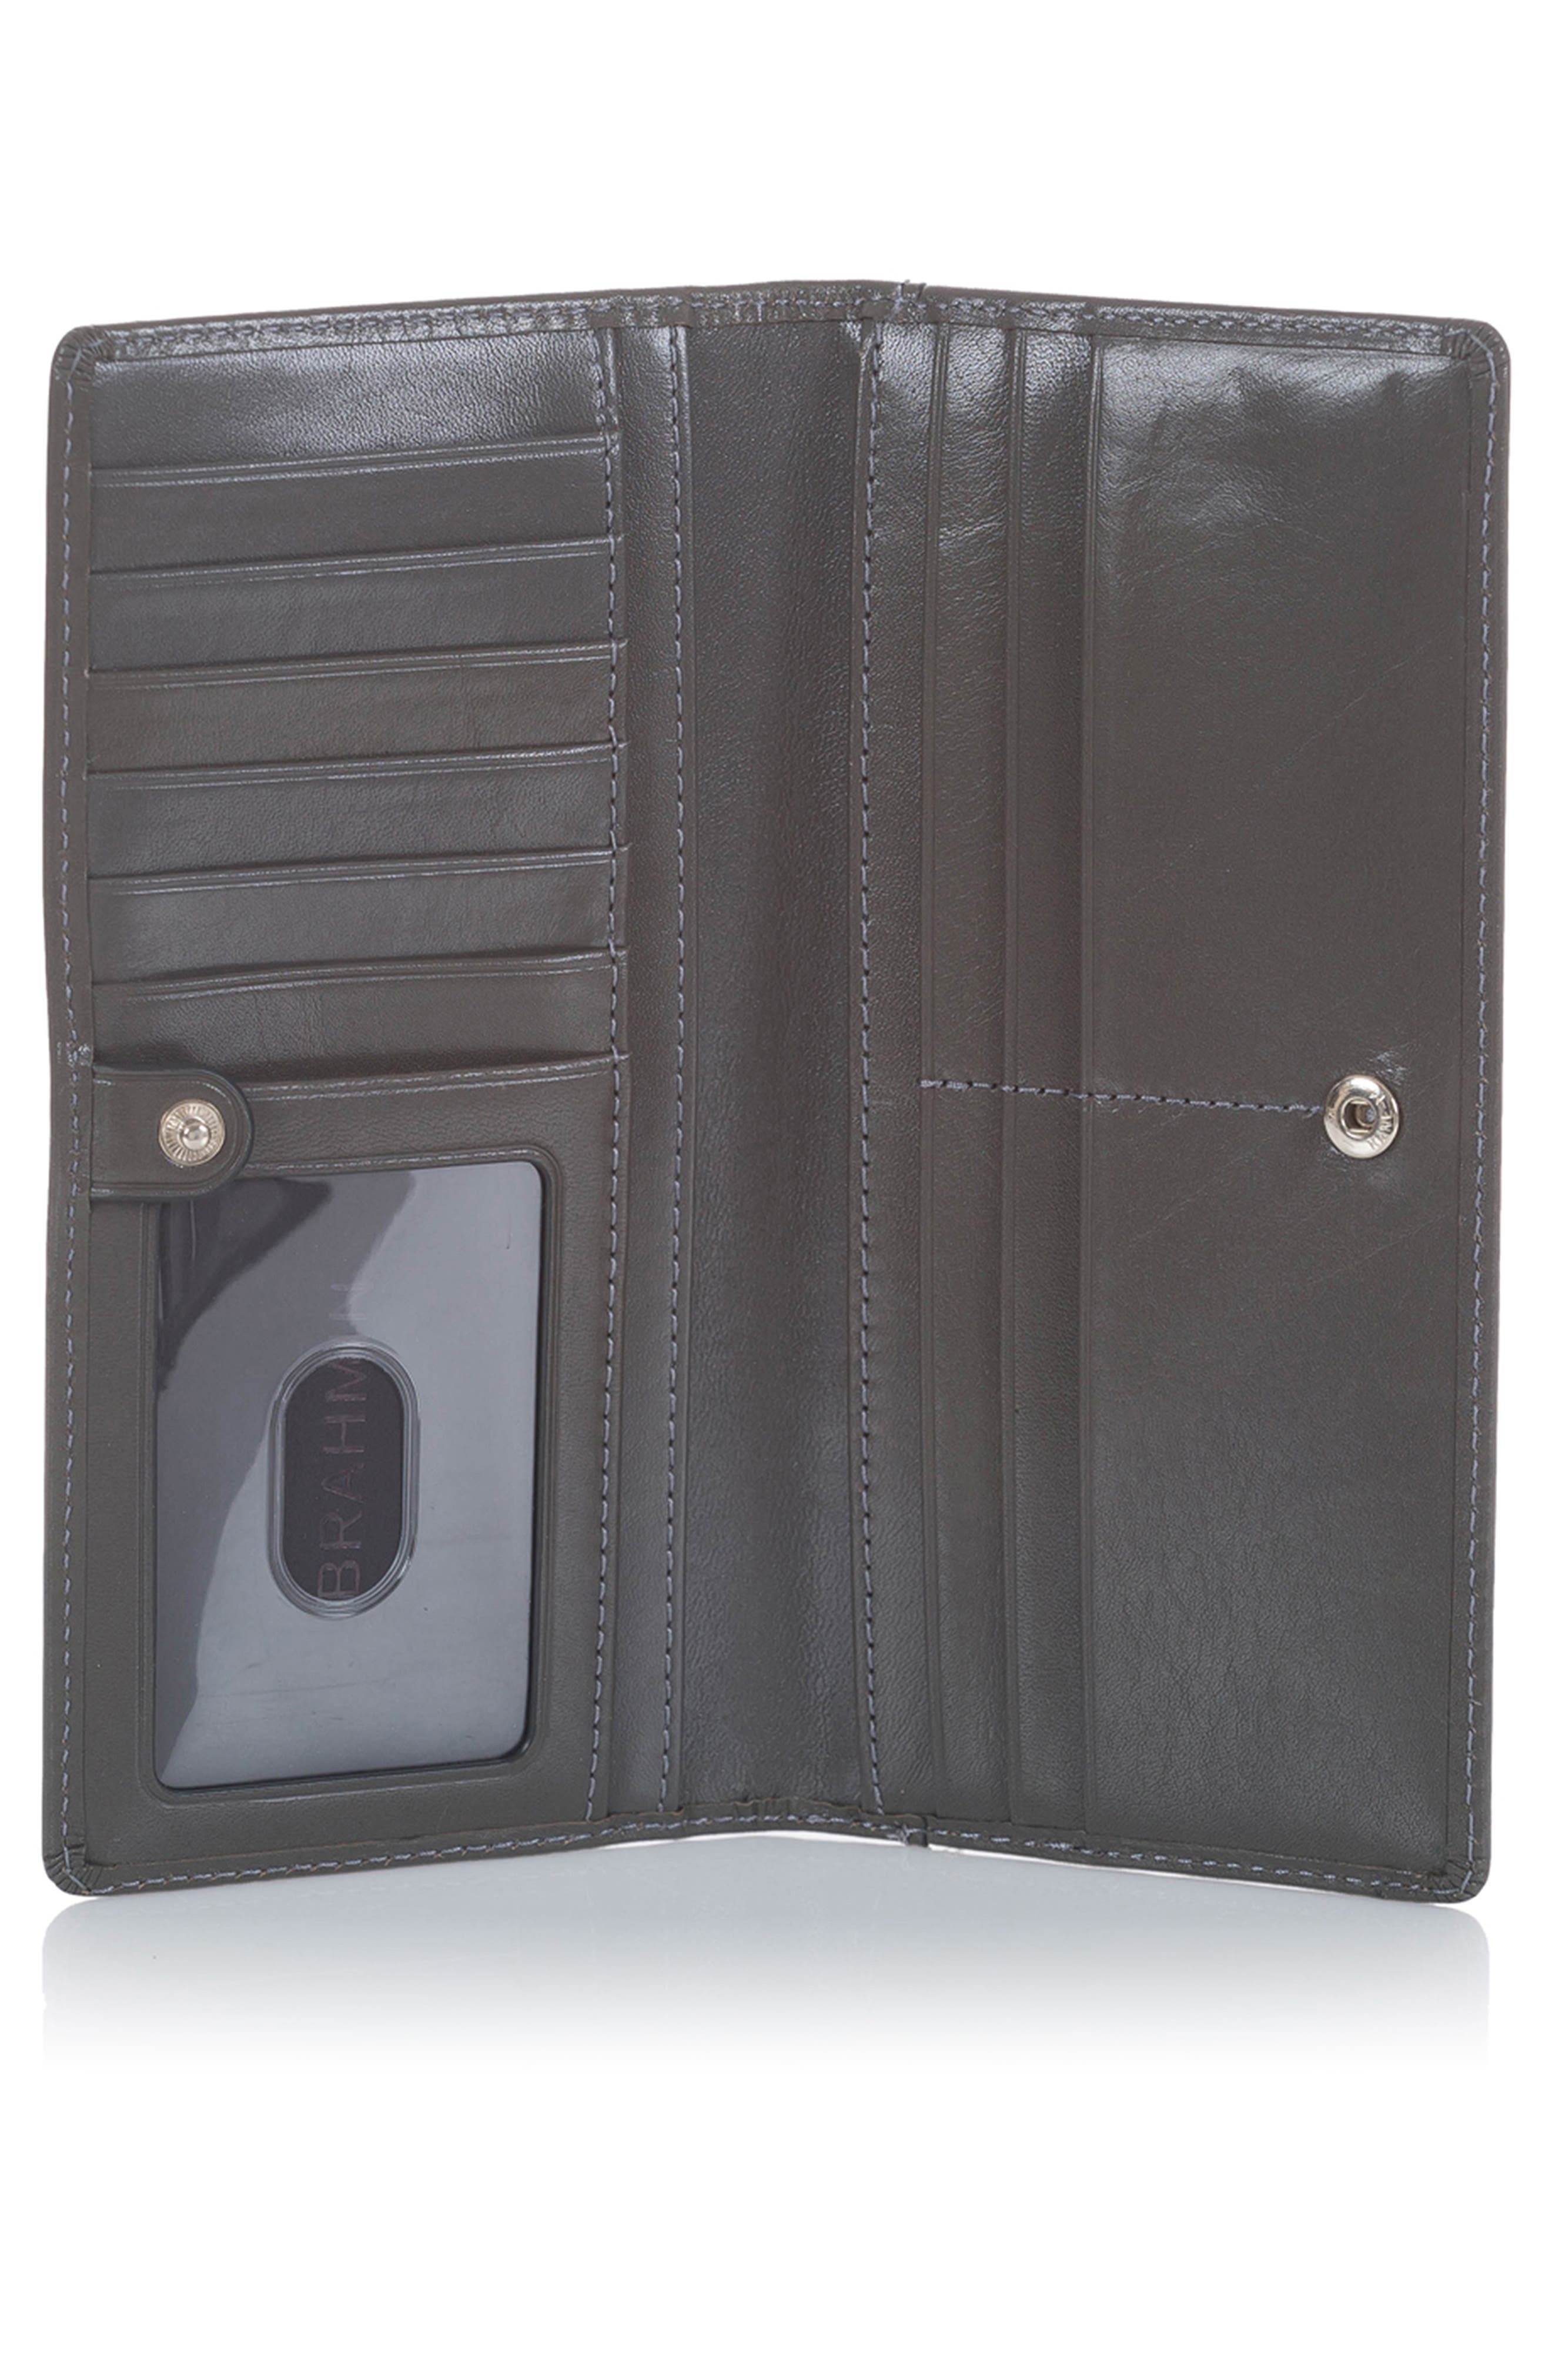 Ady Leather Wallet,                             Alternate thumbnail 2, color,                             CHARCOAL